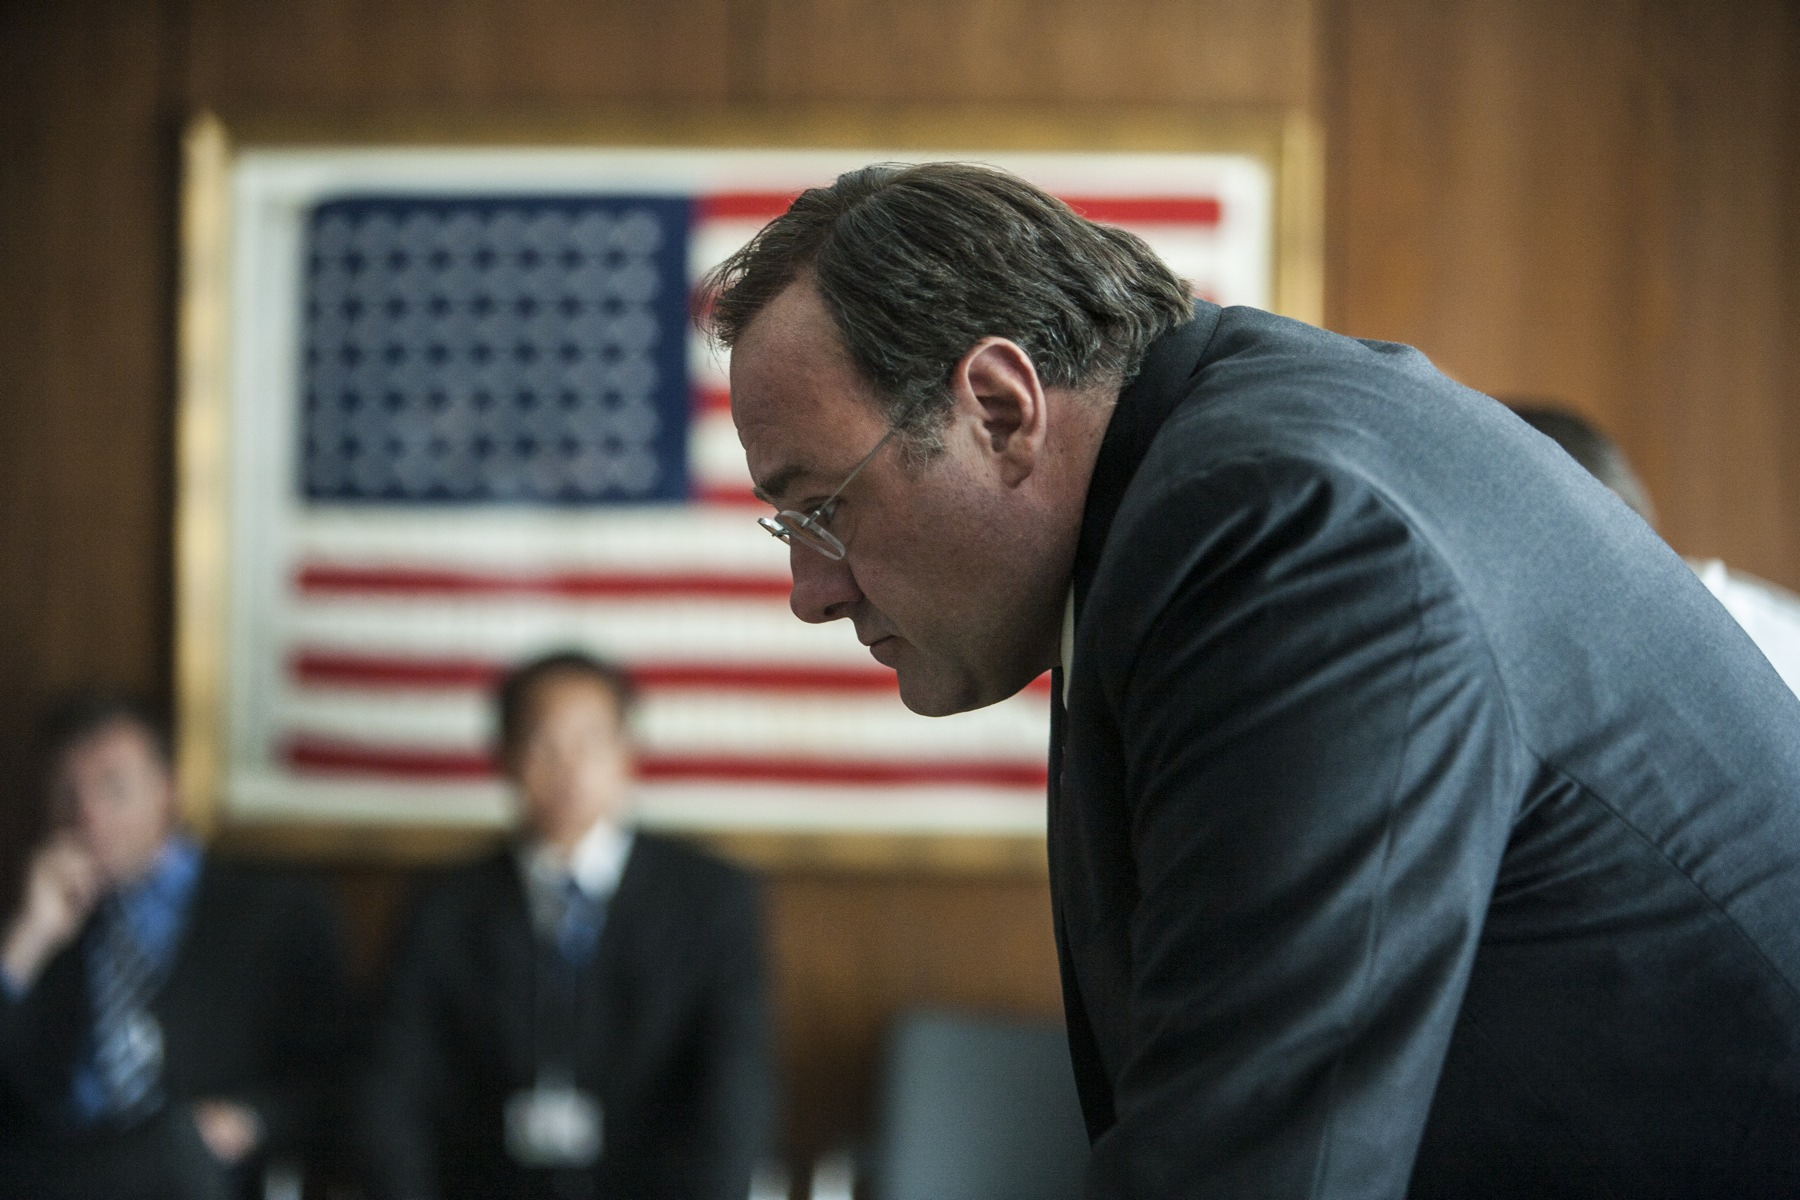 James-Gandolfini-in-Columbia-Pictures-gripping-new-thriller-directed-by-Kathryn-Bigelow-ZERO-DARK-THIRTY..jpg